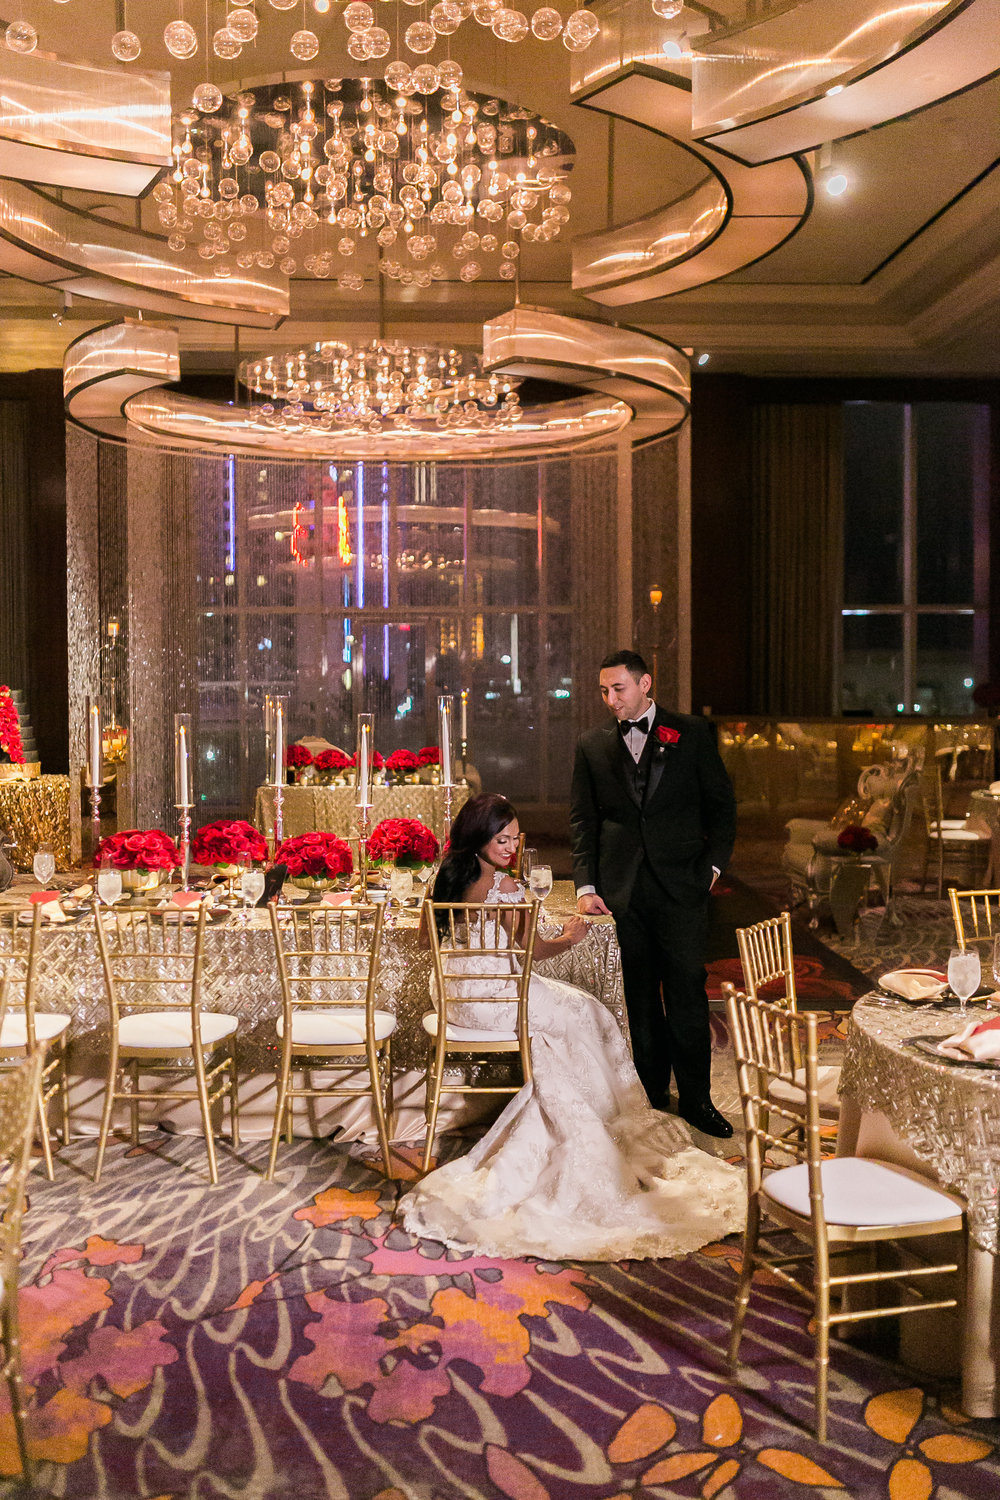 Bride and groom taking a moment for themselves before their guests enter. Las Vegas Wedding Planner Andrea Eppolito shares this multicultural wedding.  Photo by J.Anne Photography. Wedding at Mandarin Oriental Las Vegas.  Decor by DBD Vegas.